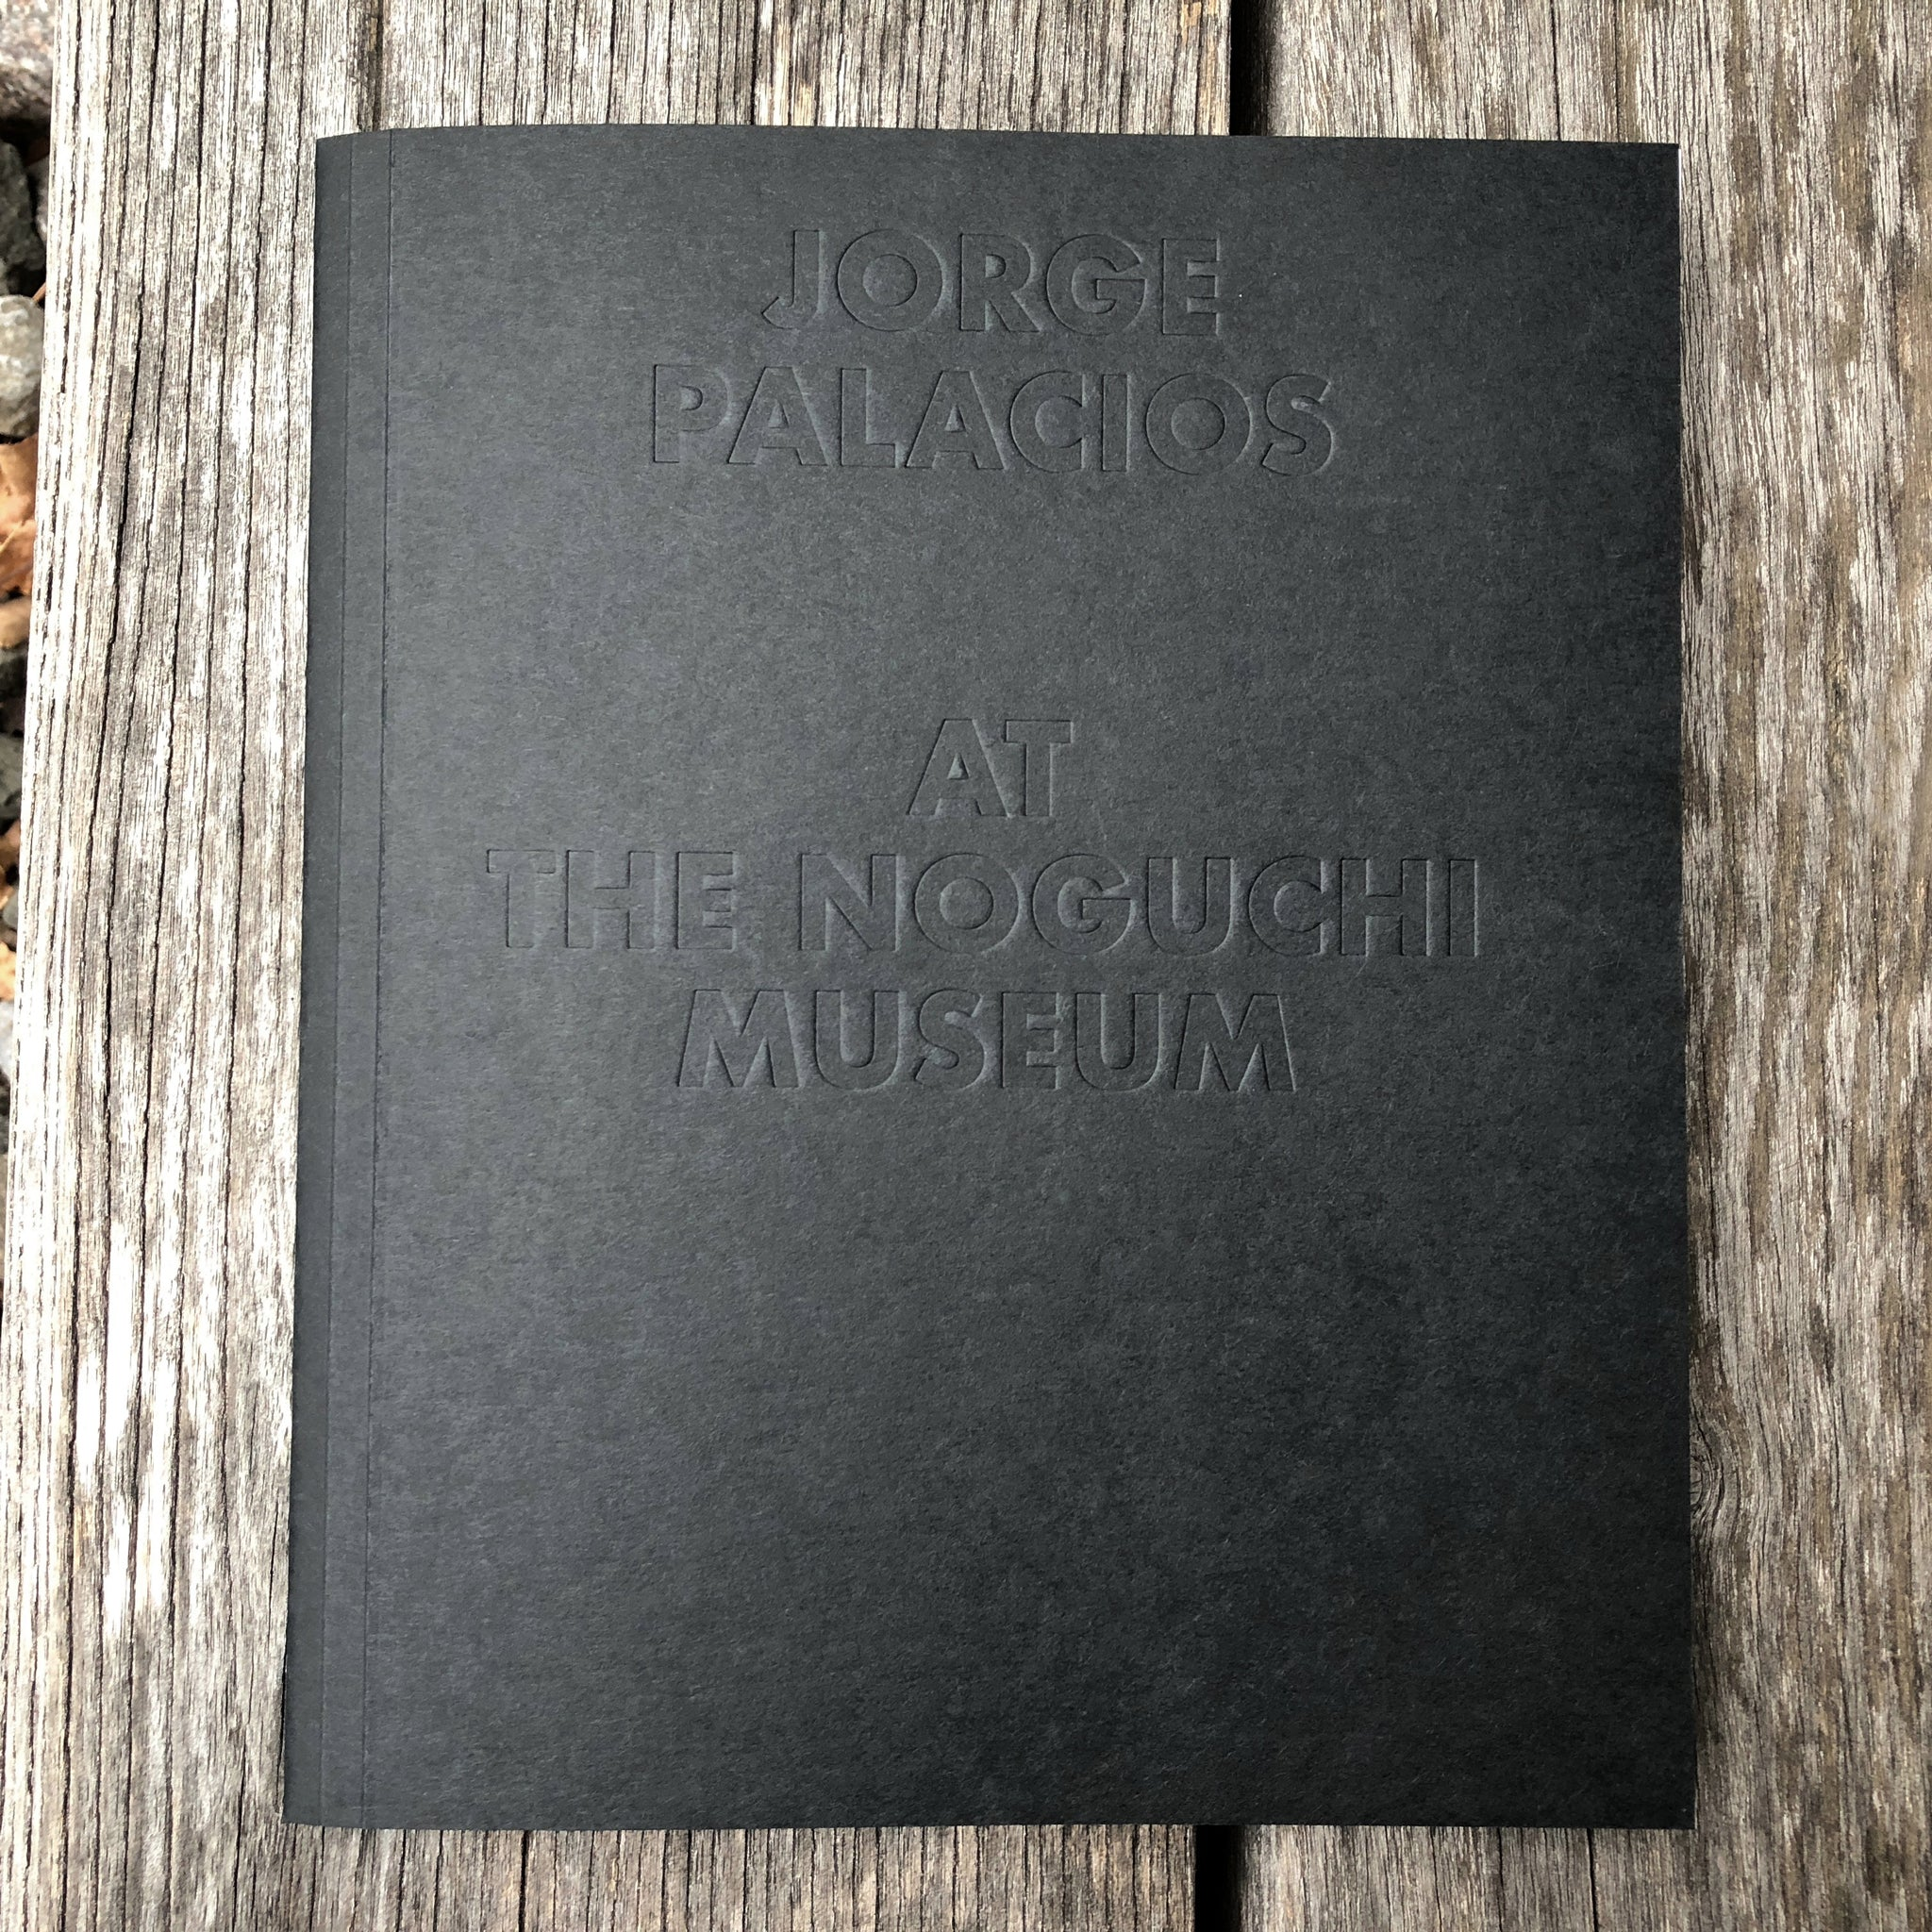 'Jorge Palacios at The Noguchi Museum' cover. Black paper cover with blind-stamped sans serif type.